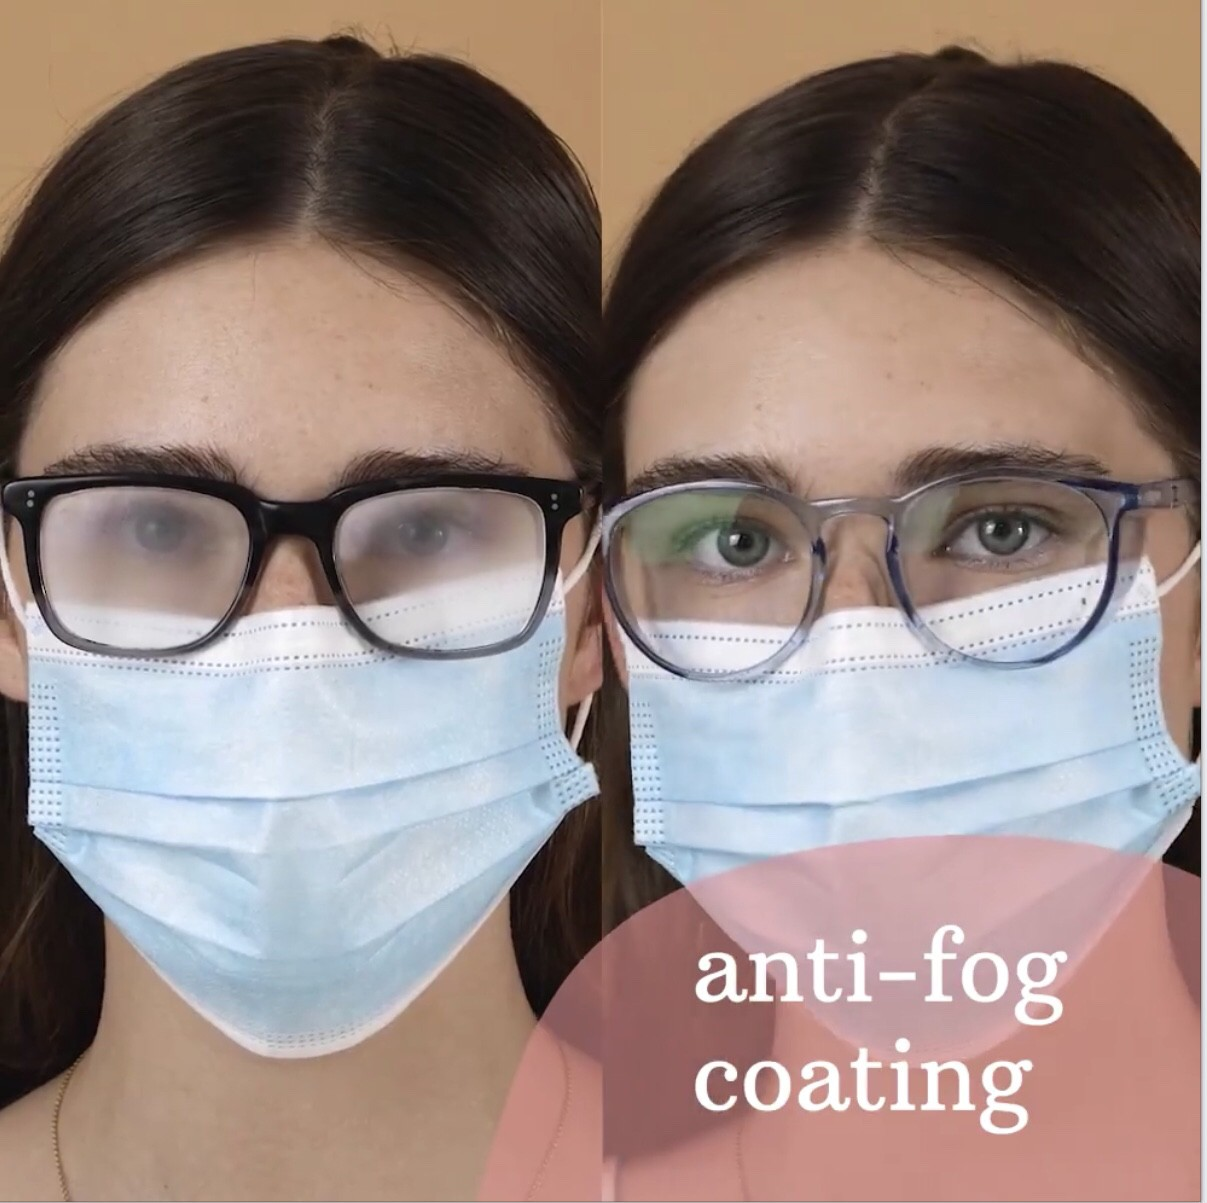 Before of foggy glasses and after using Stoggles while wearing a mask